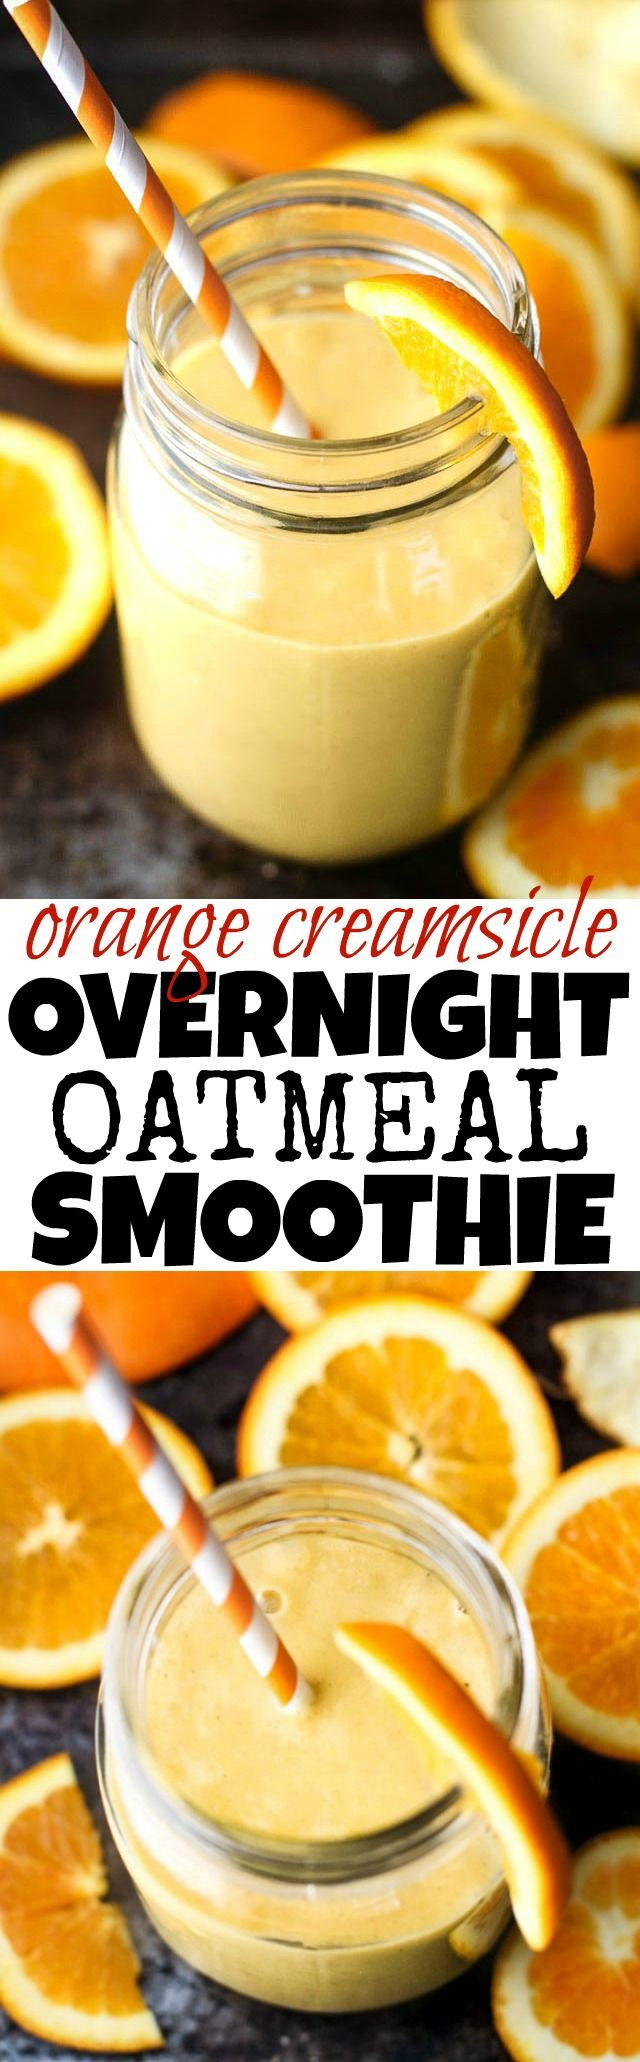 This creamy and refreshing Orange Creamsicle Overnight Oatmeal Smoothie tastes just like a drinkable Creamsicle! Only BETTER because it's vegan, refined-sugar-free, and packed with vitamins!   runningwithspoons... #healthy #recipe #breakfast